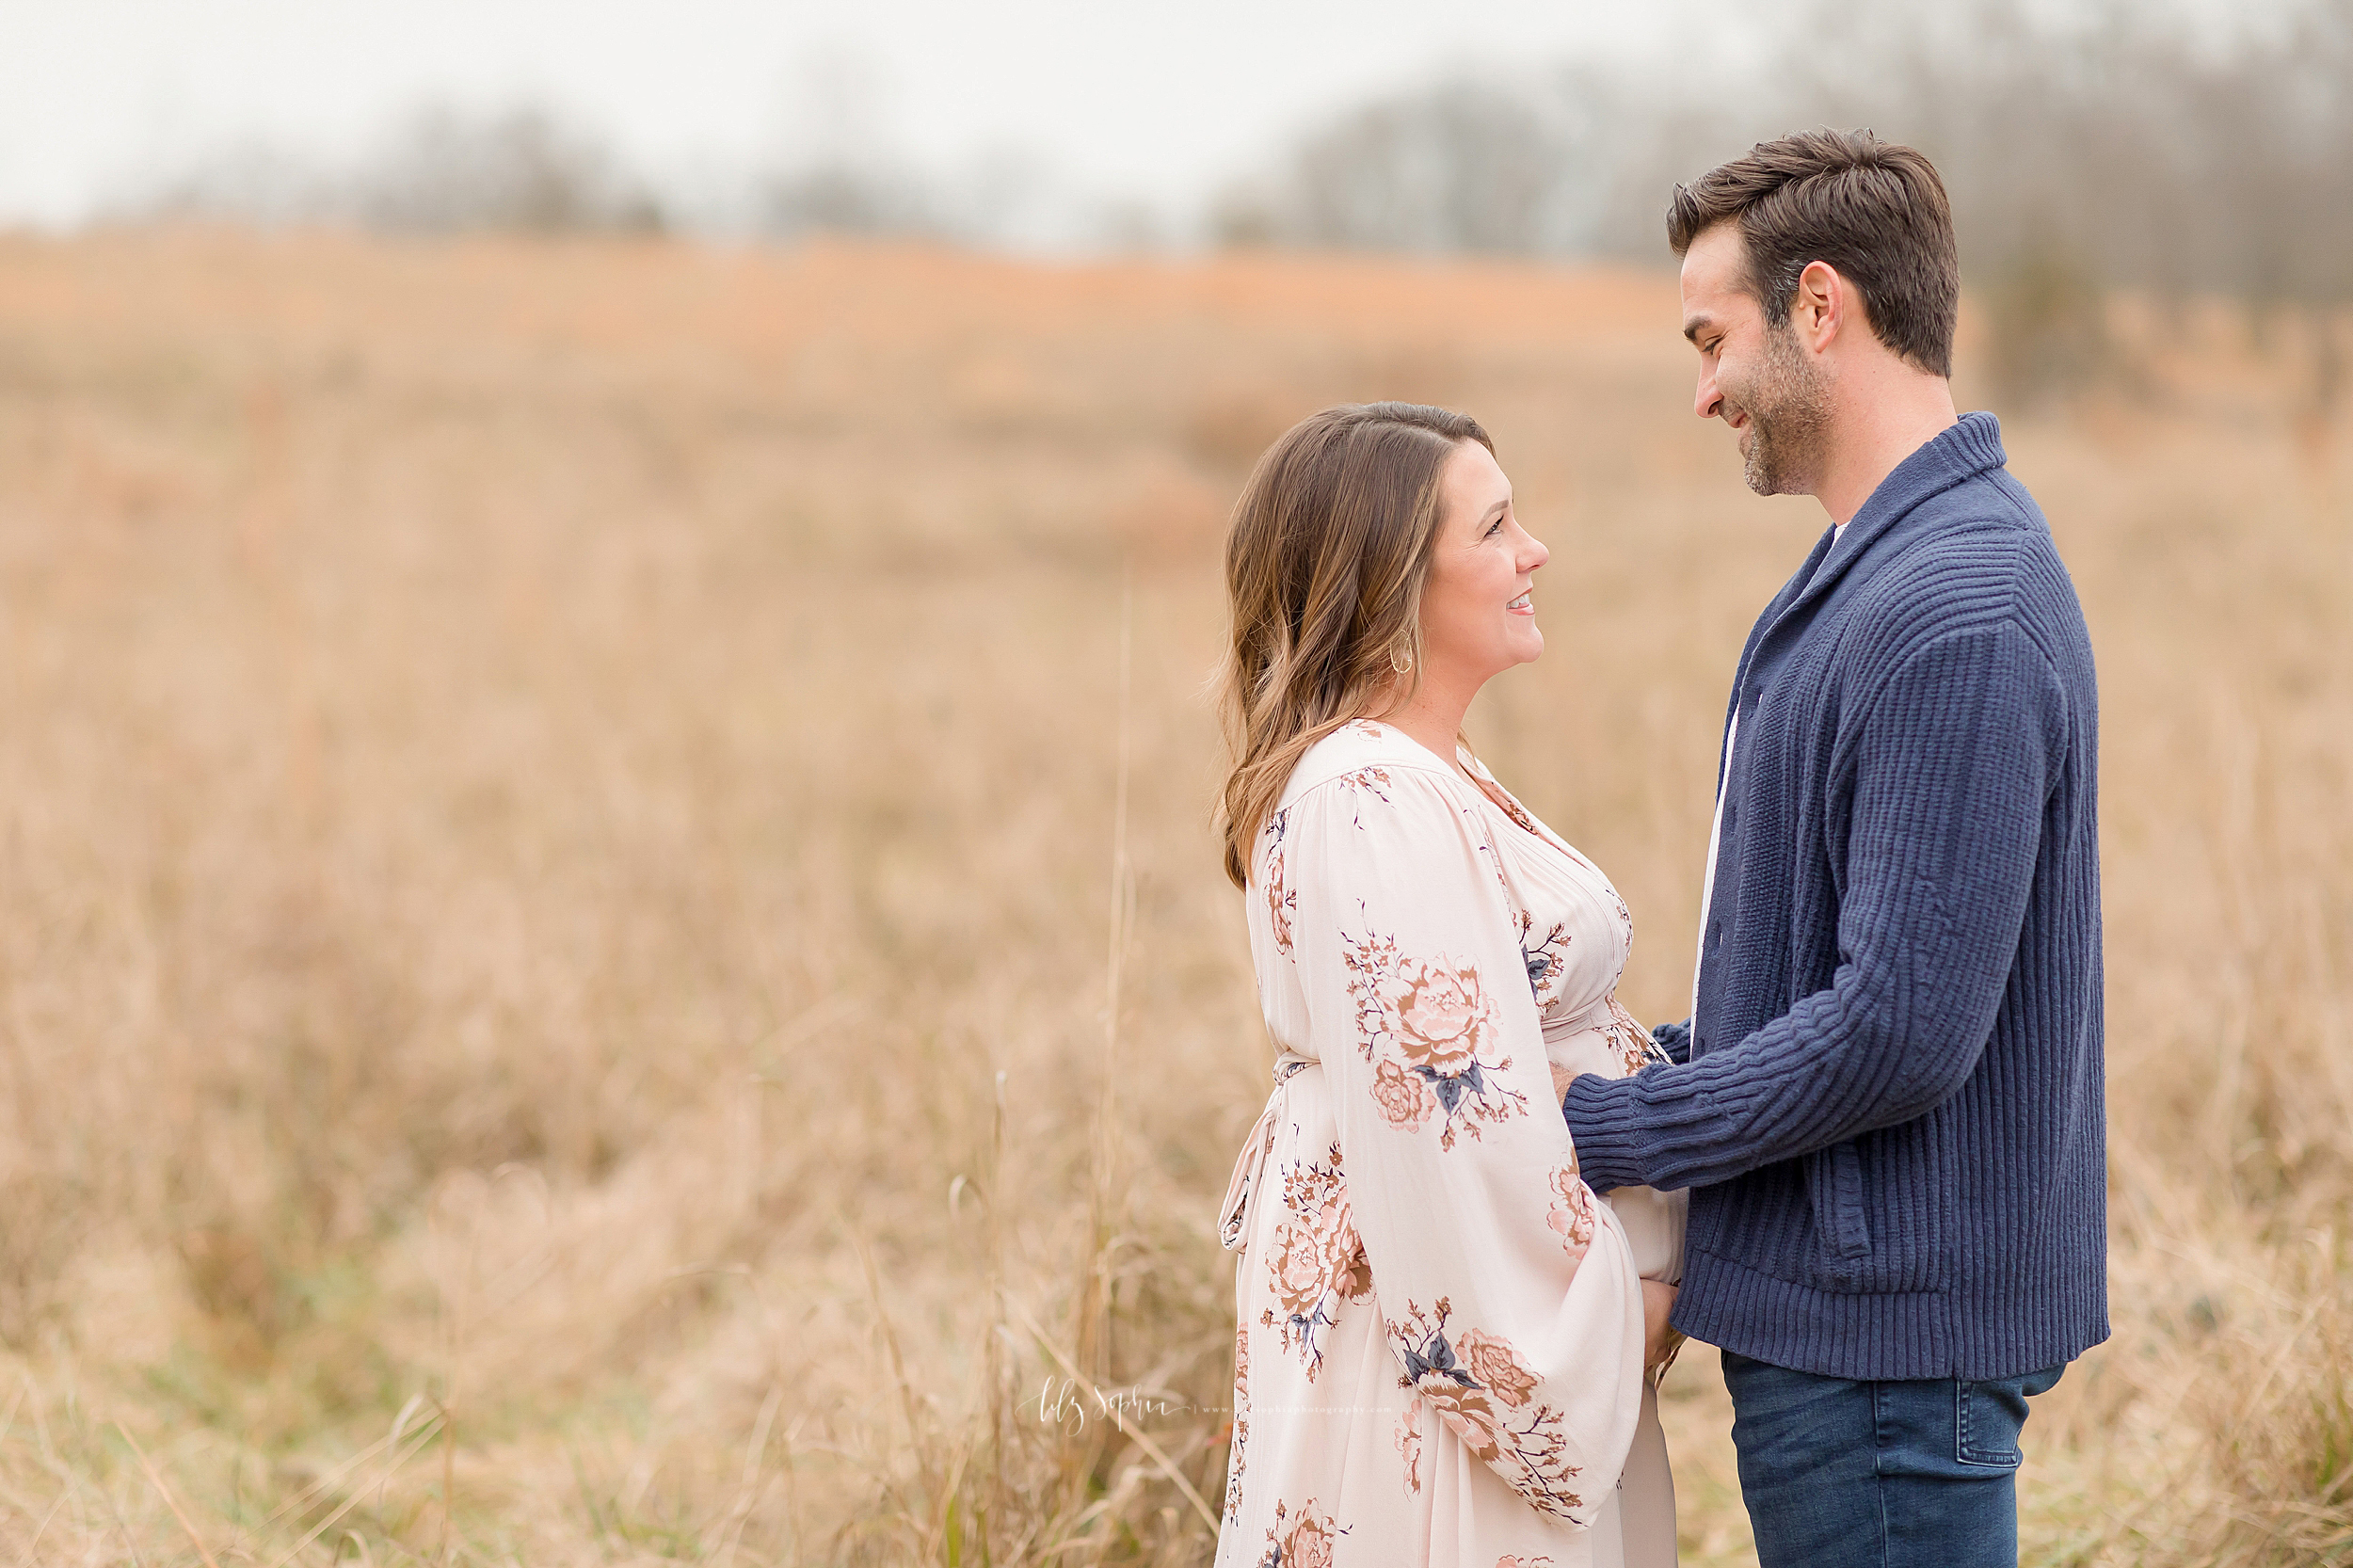 An image of an expectant couple in a field in Atlanta.  The husband wears a blue buttoned down cable knit sweater and blue jeans.  The wife wears a flowered, long-sleeved , empire waist long gown.  The husband caresses his wife's face and holds her at her waist while the look lovingly into each other's eyes.